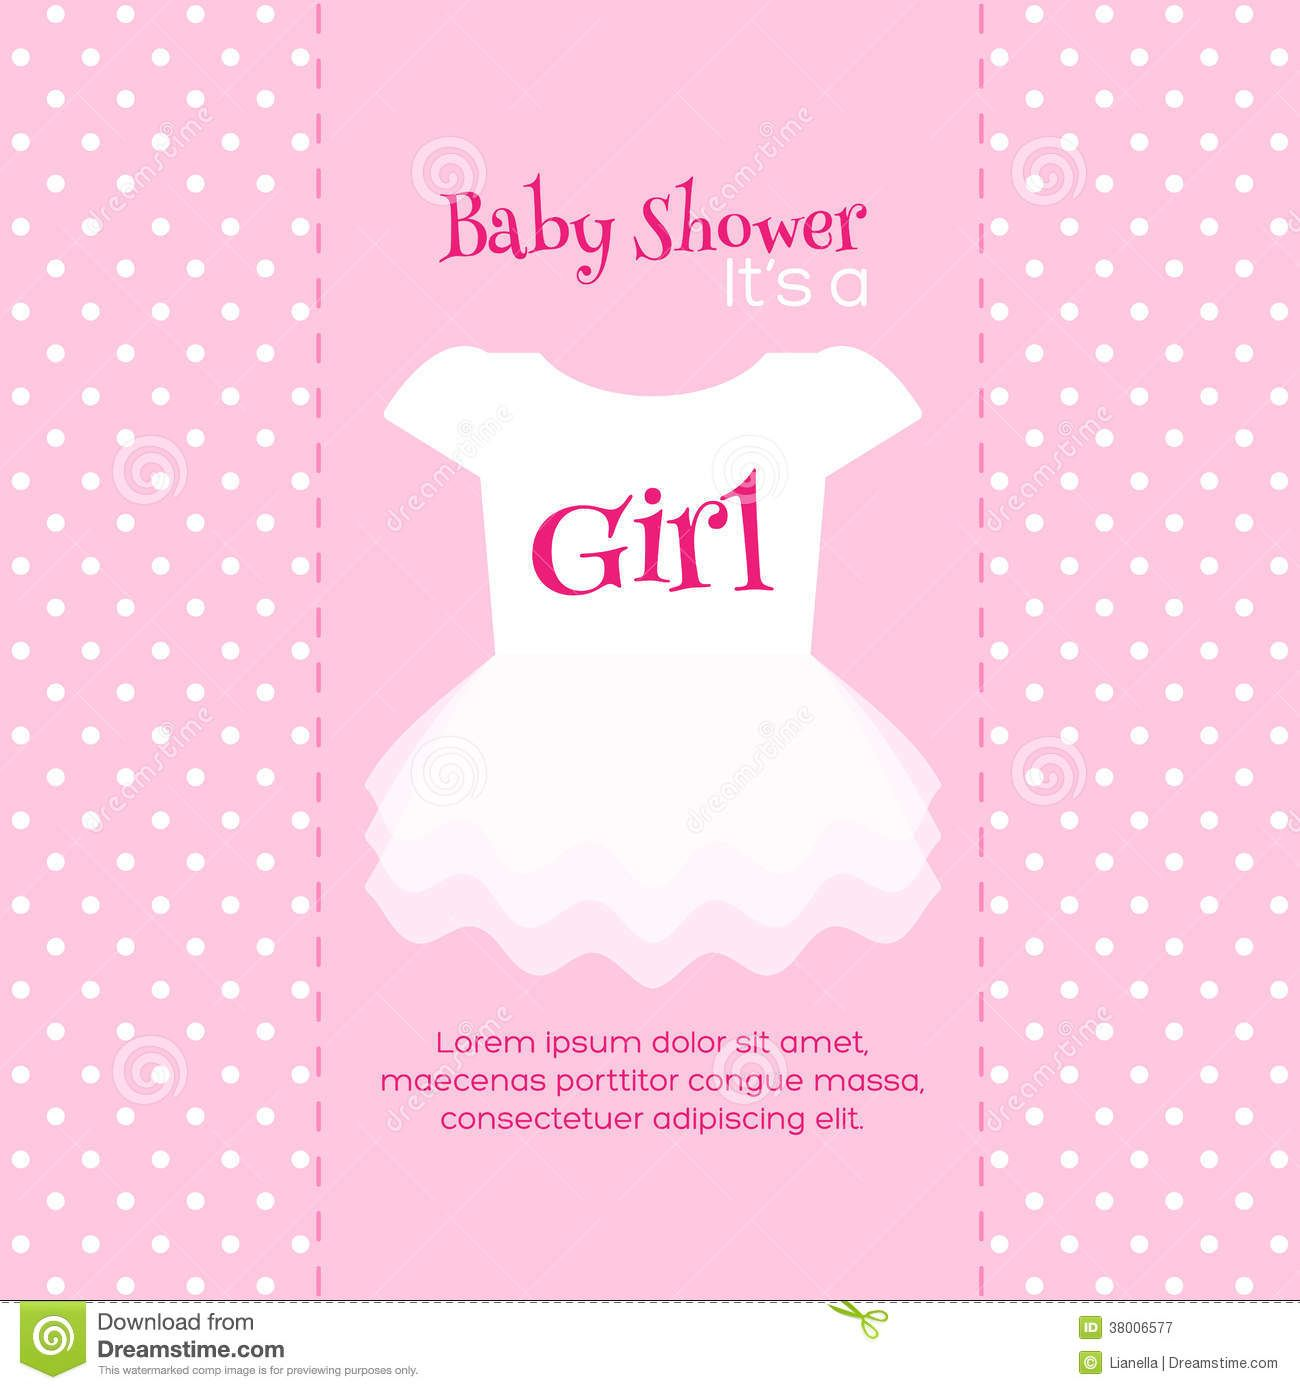 Free Templates For Baby Shower Invitations Baby Shower Ideas Free Baby Shower Invitations Create Baby Shower Invitations Baby Shower Invitation Cards